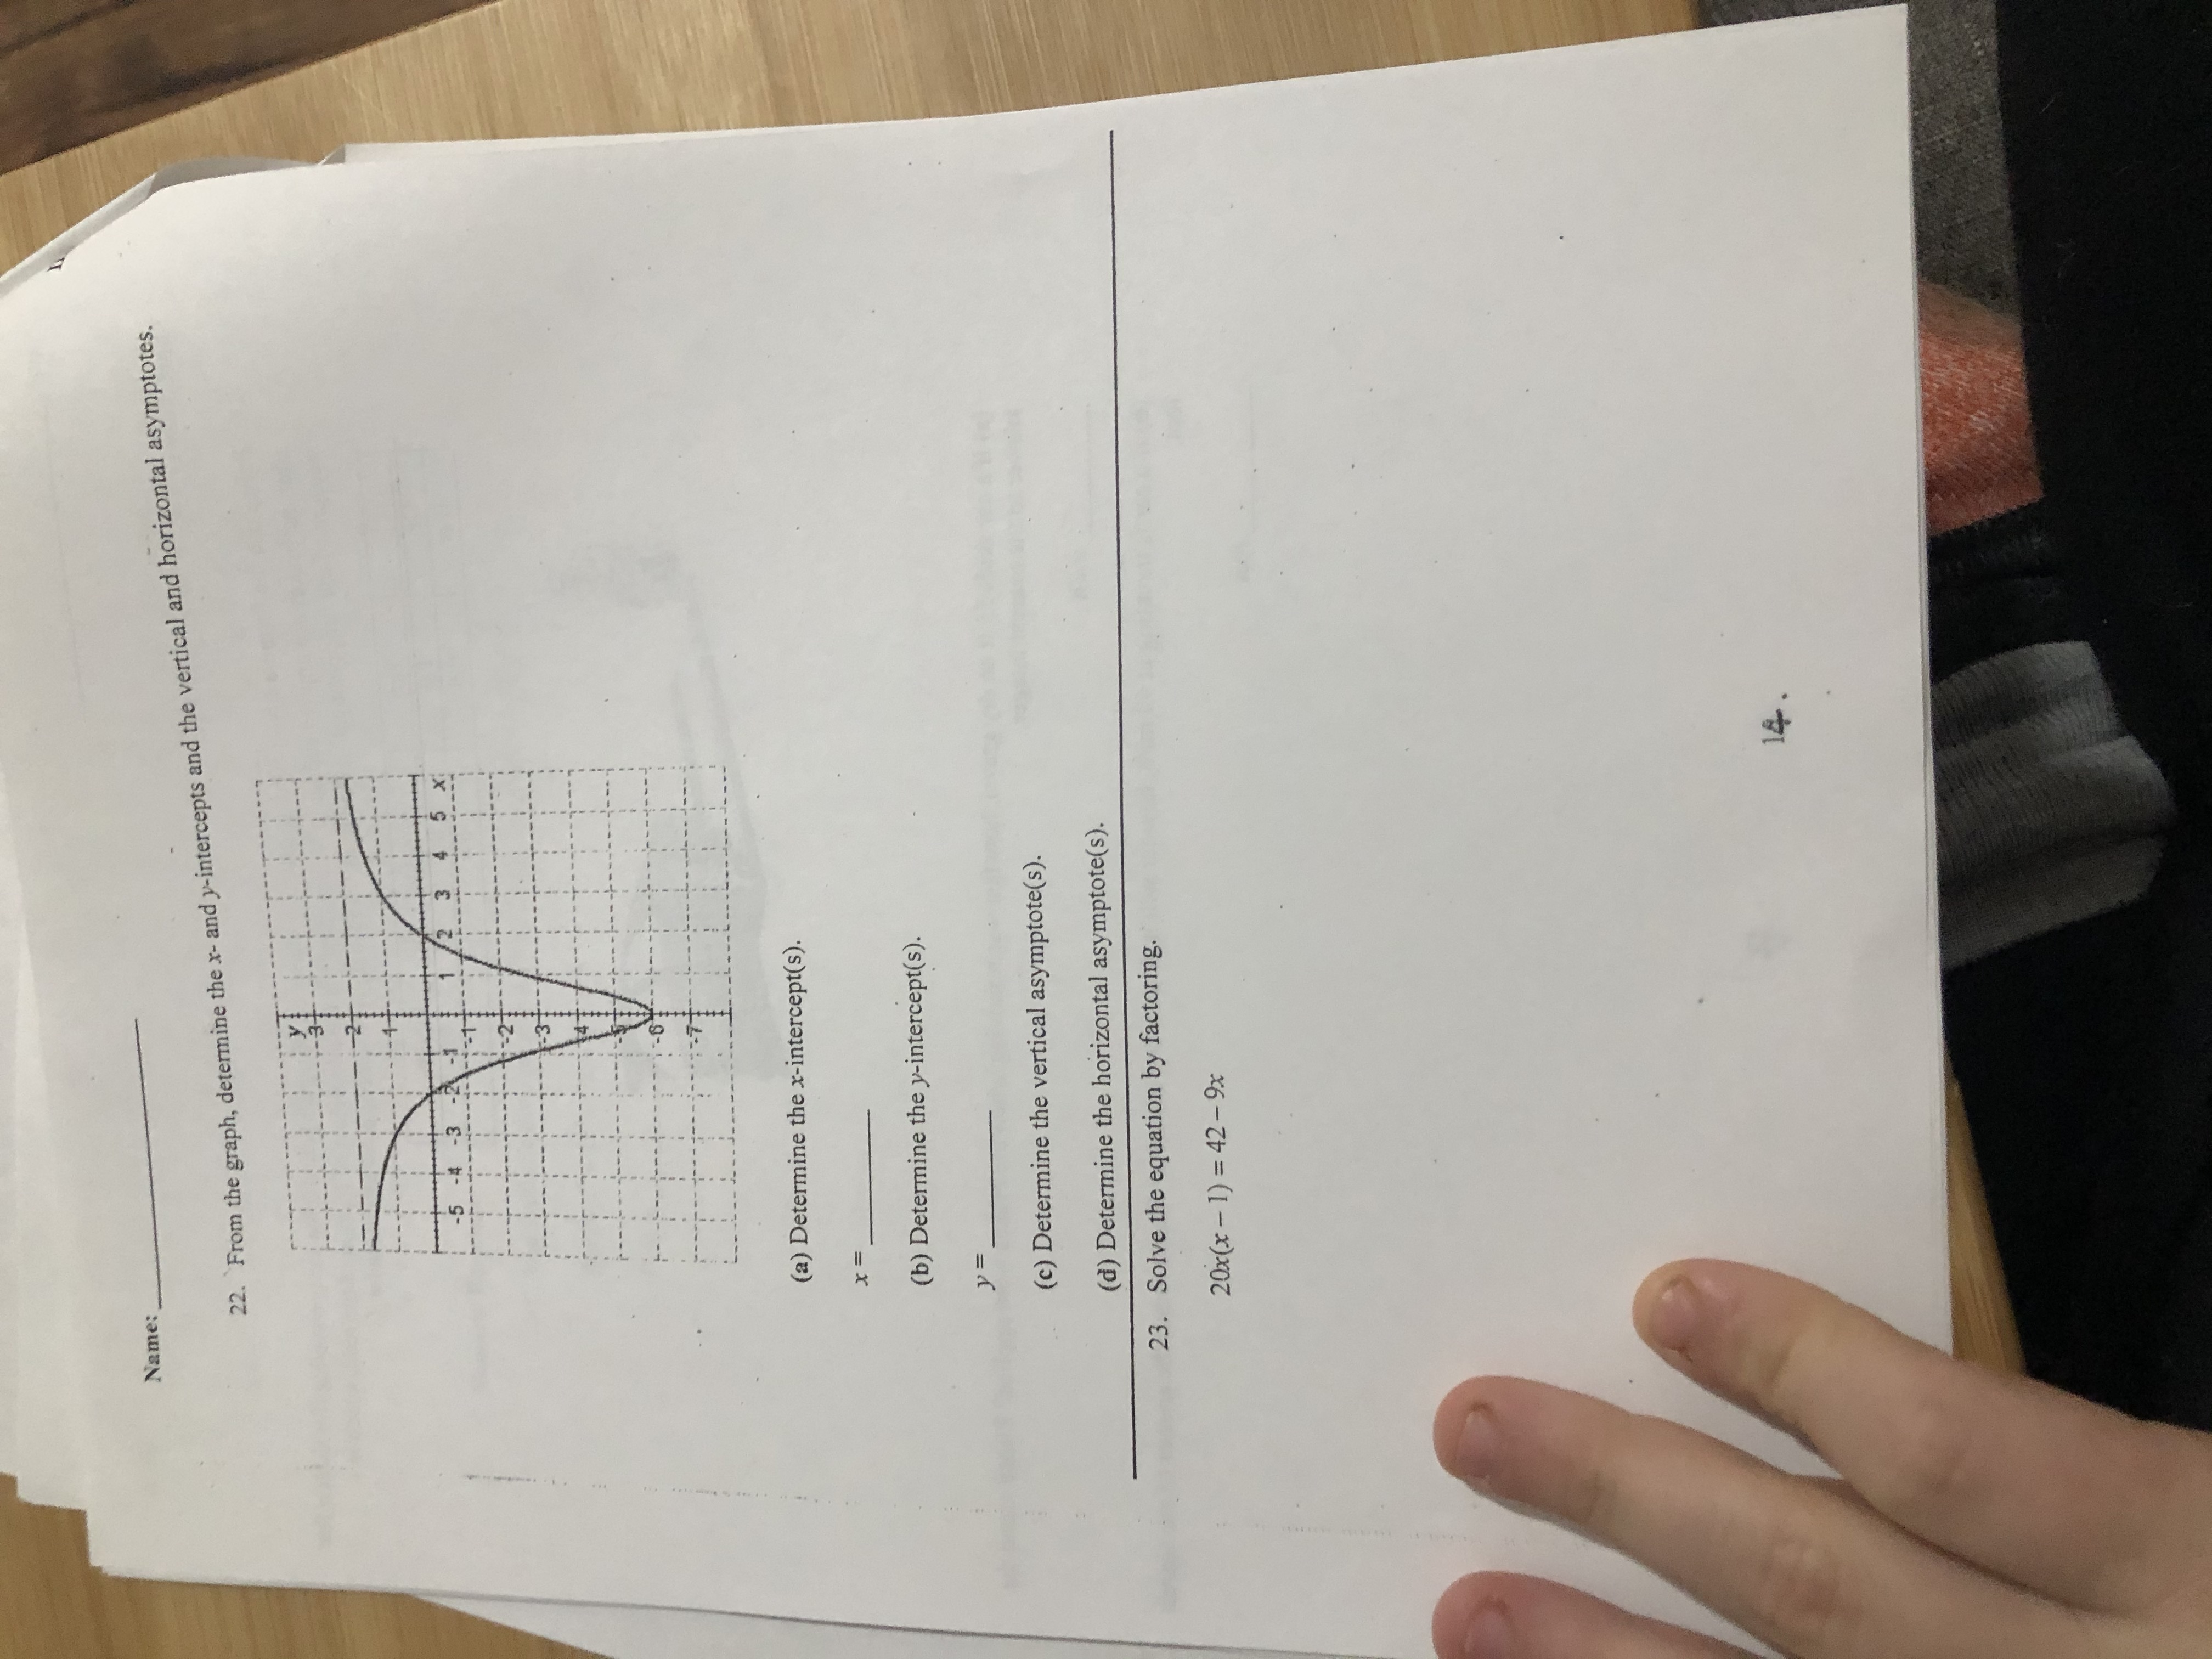 Answered Name 22 From The Graph Determine The